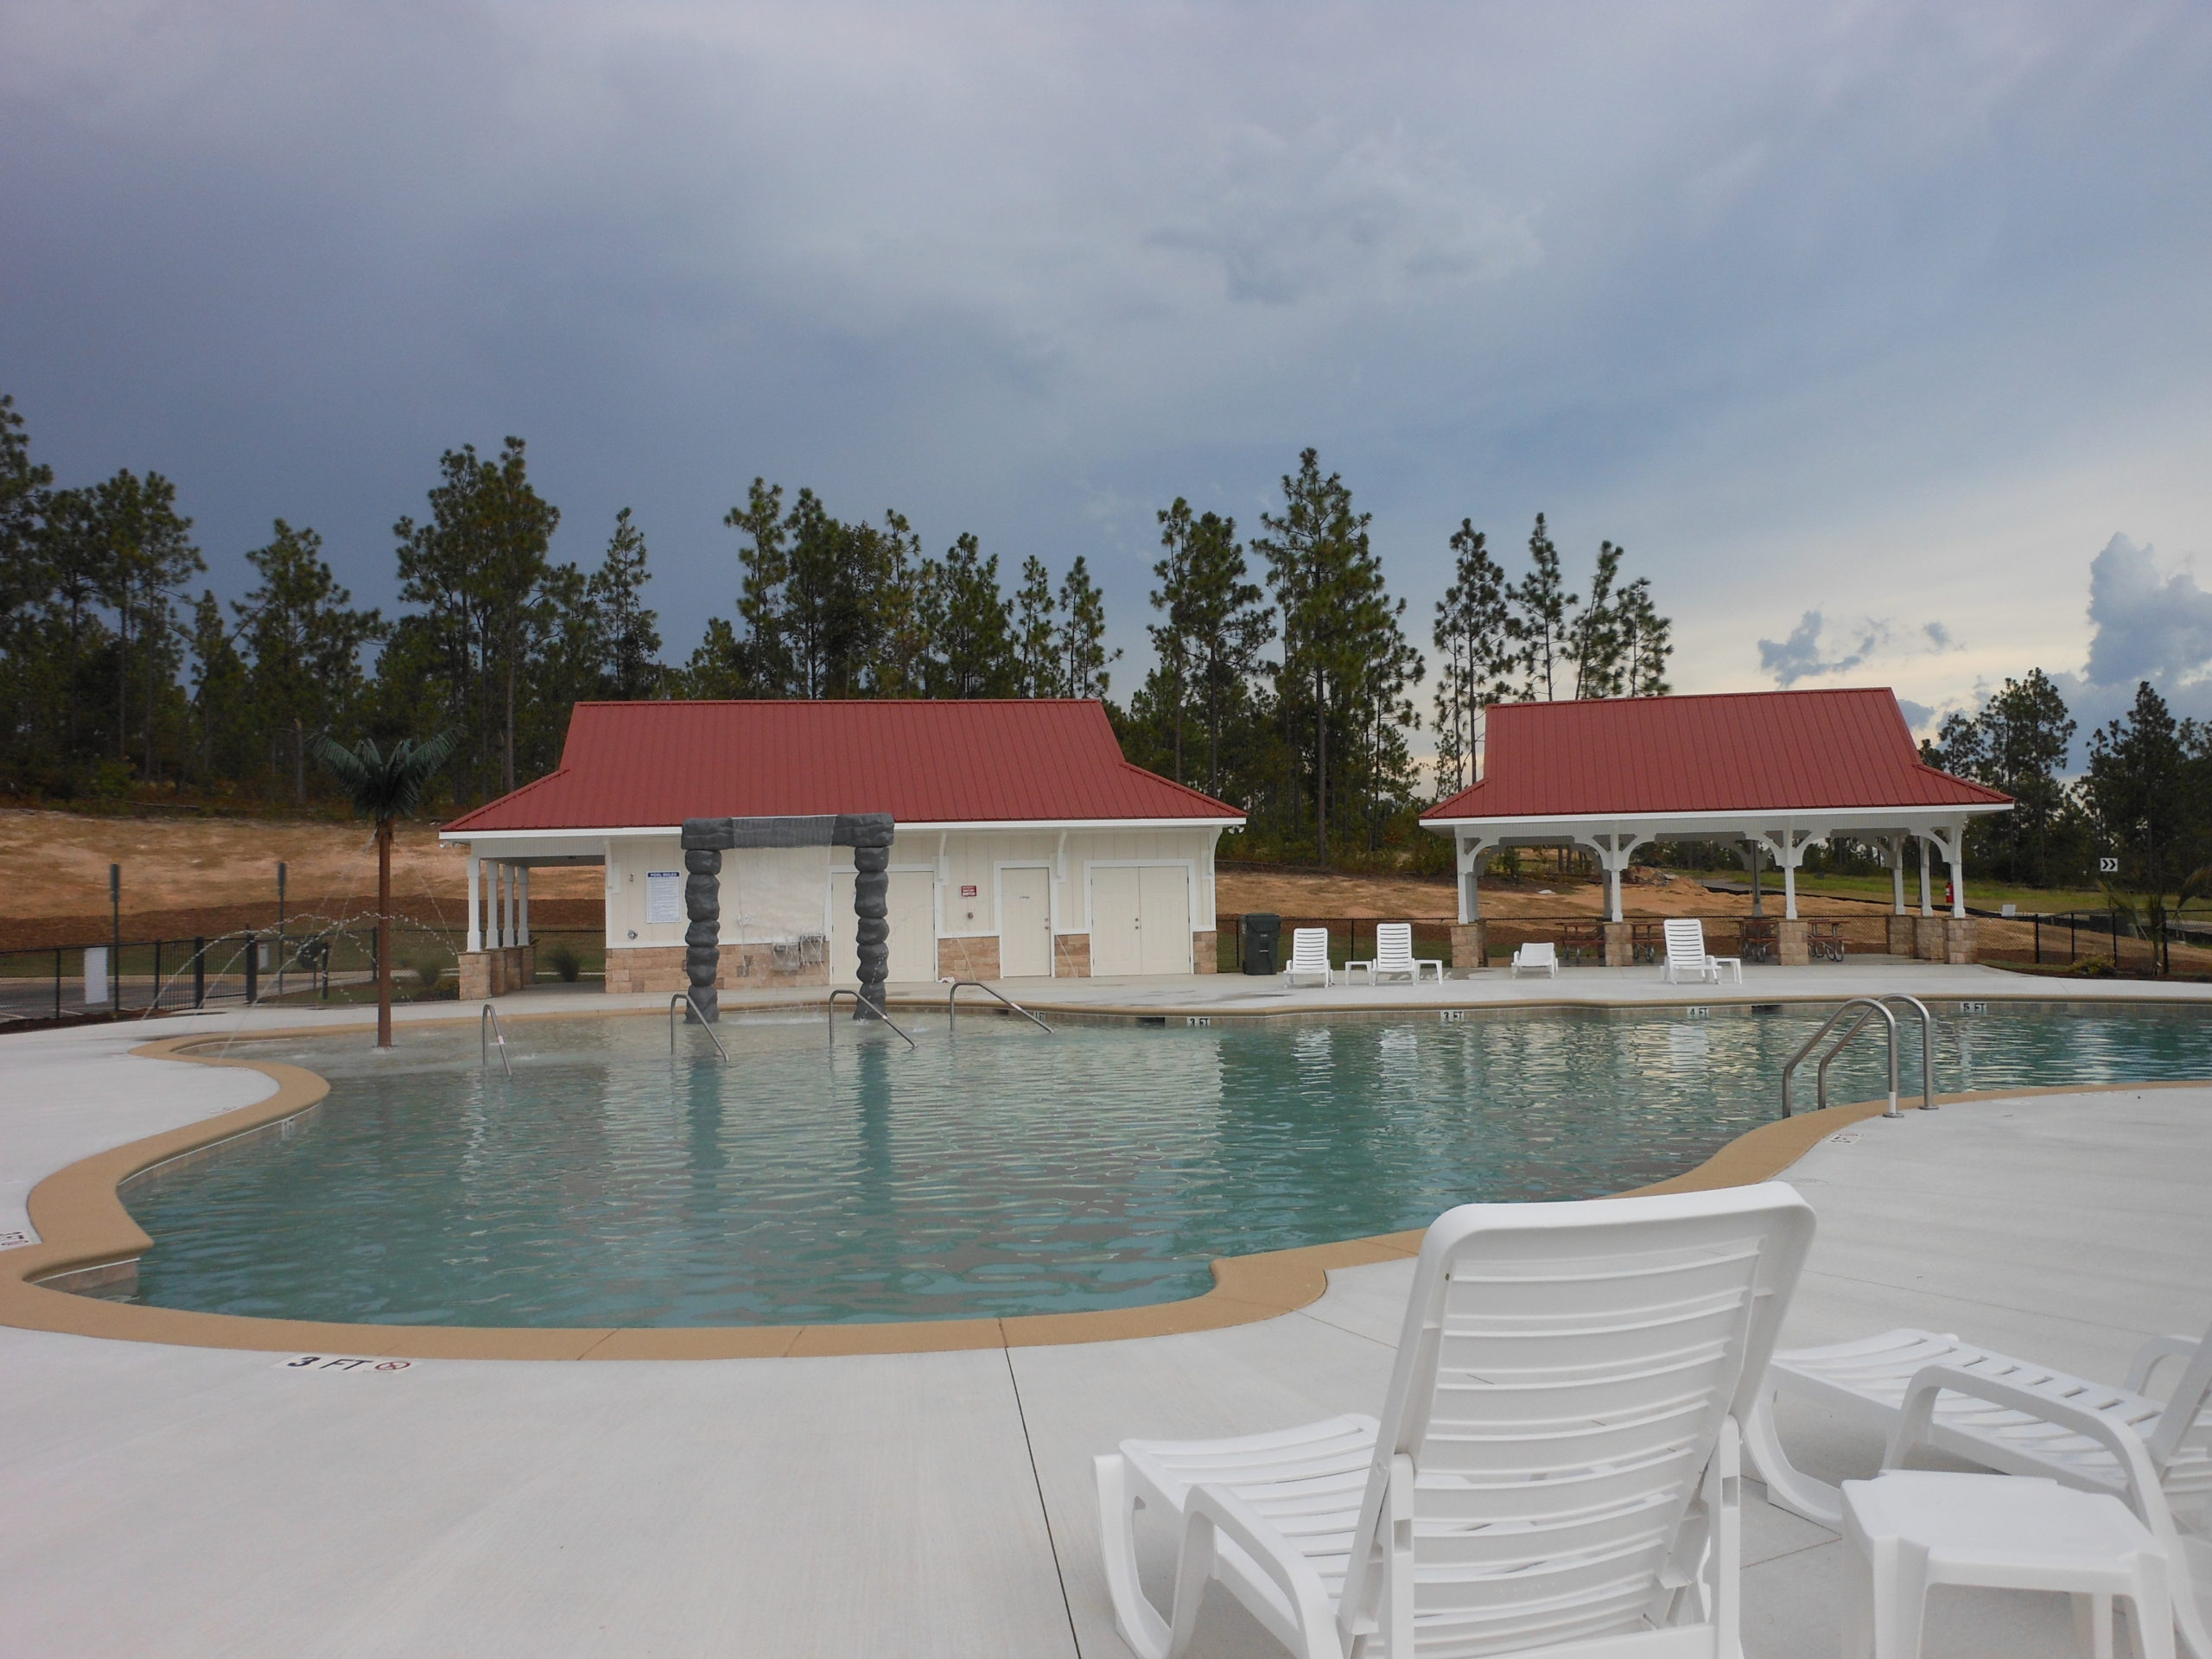 An image of the pool with kid area at Gregg Mill.